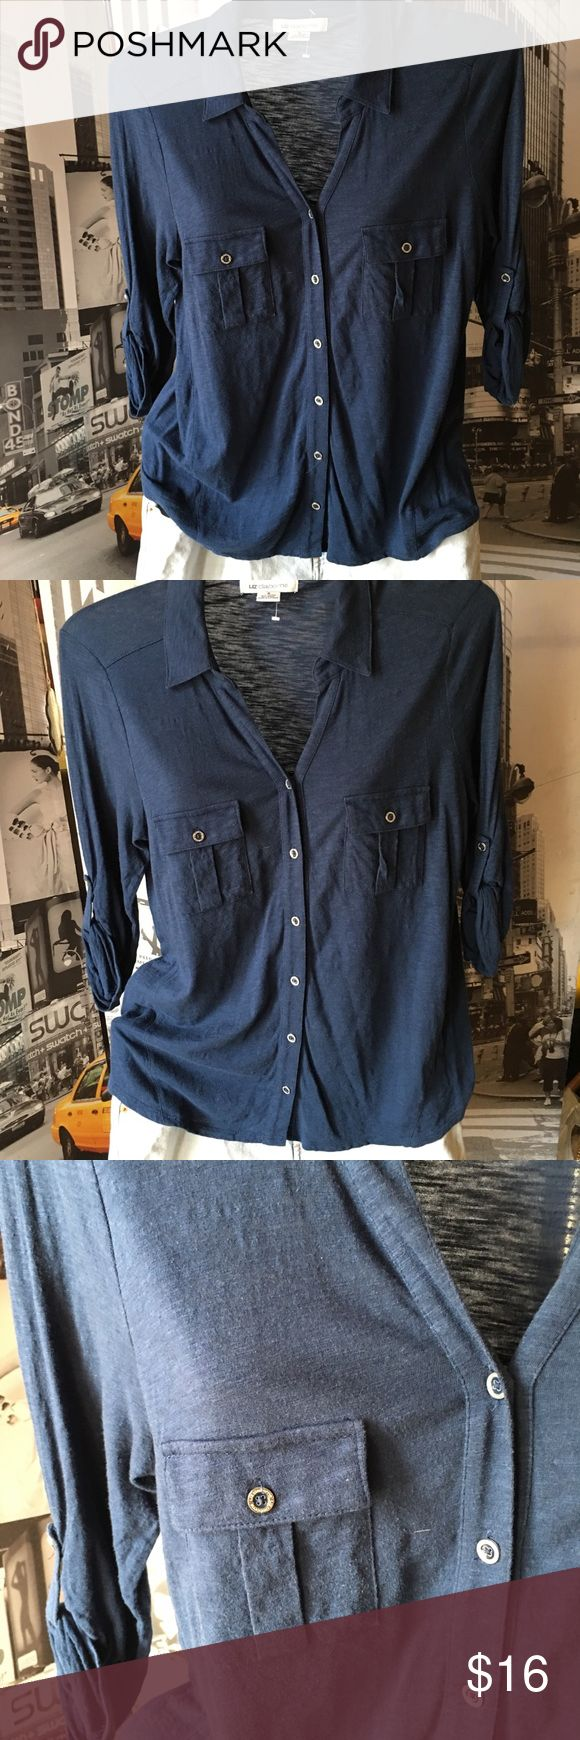 Liz Claiborne button top (M) Soft Confortable blouse for any occasion-❤️ Looks great with any jeans or skirt 😵love the way it looks sporty or dressy Liz Claiborne Tops Button Down Shirts